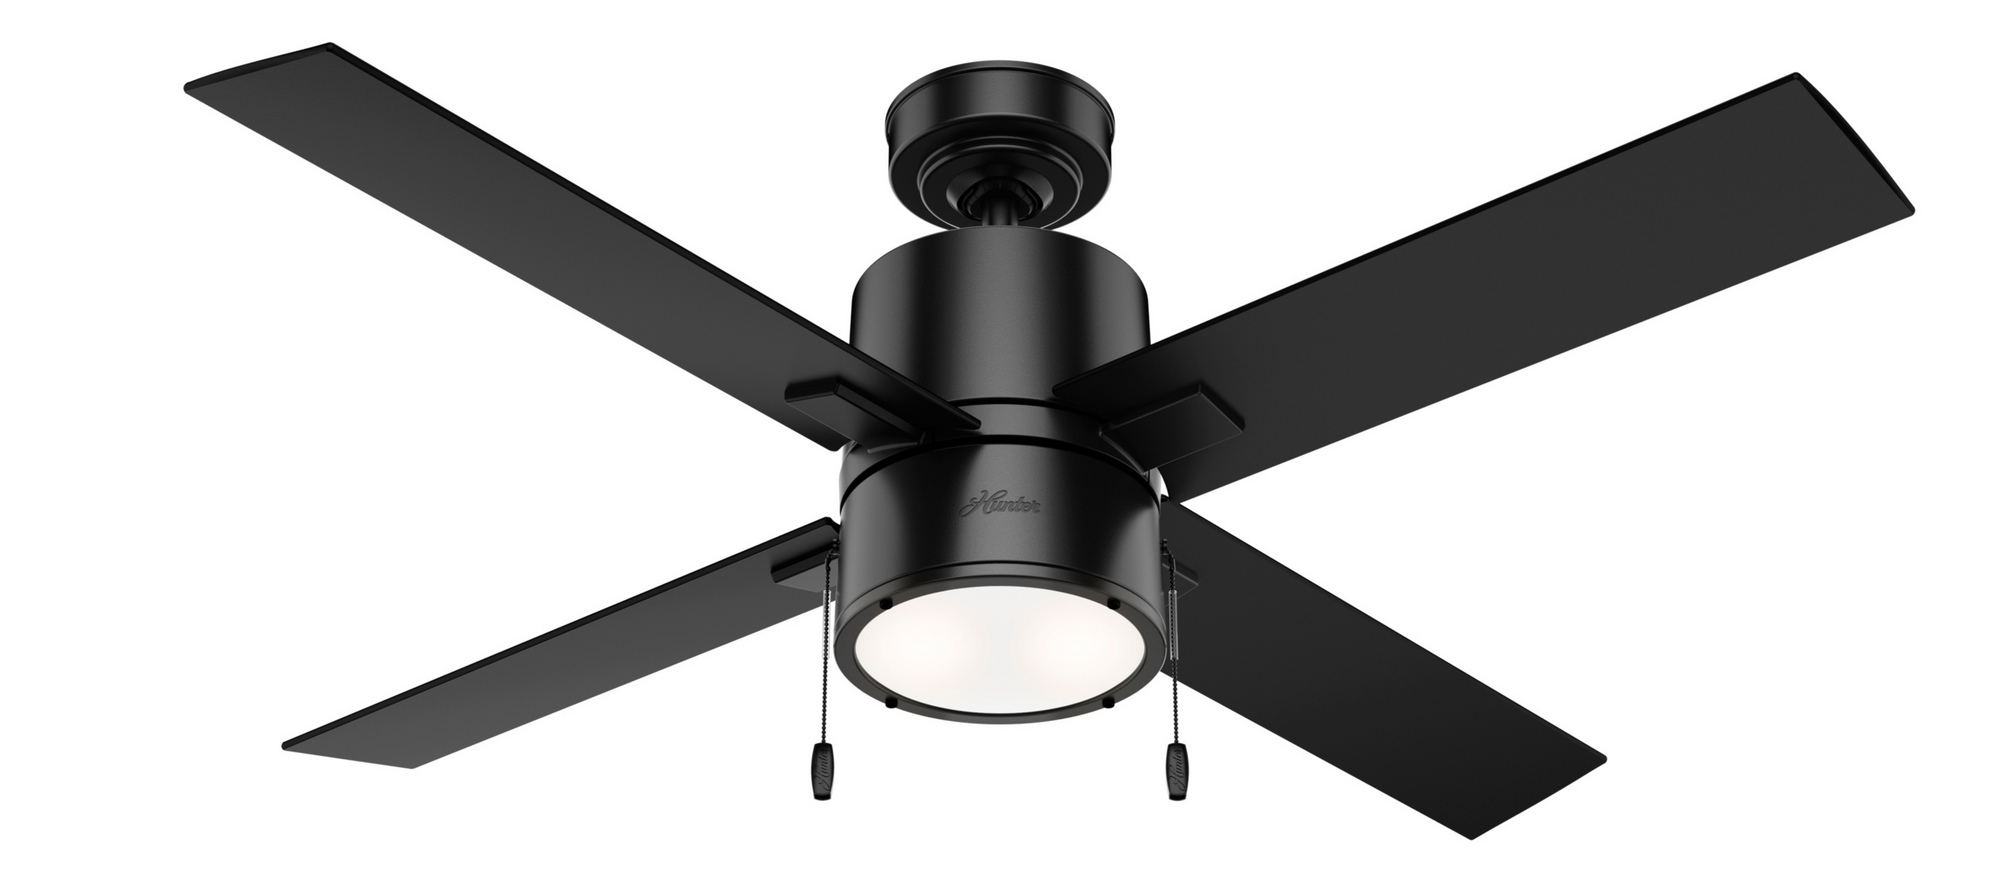 Hunter Indoor Beck Ceiling Fan with LED LightJD inch, Black, 54215